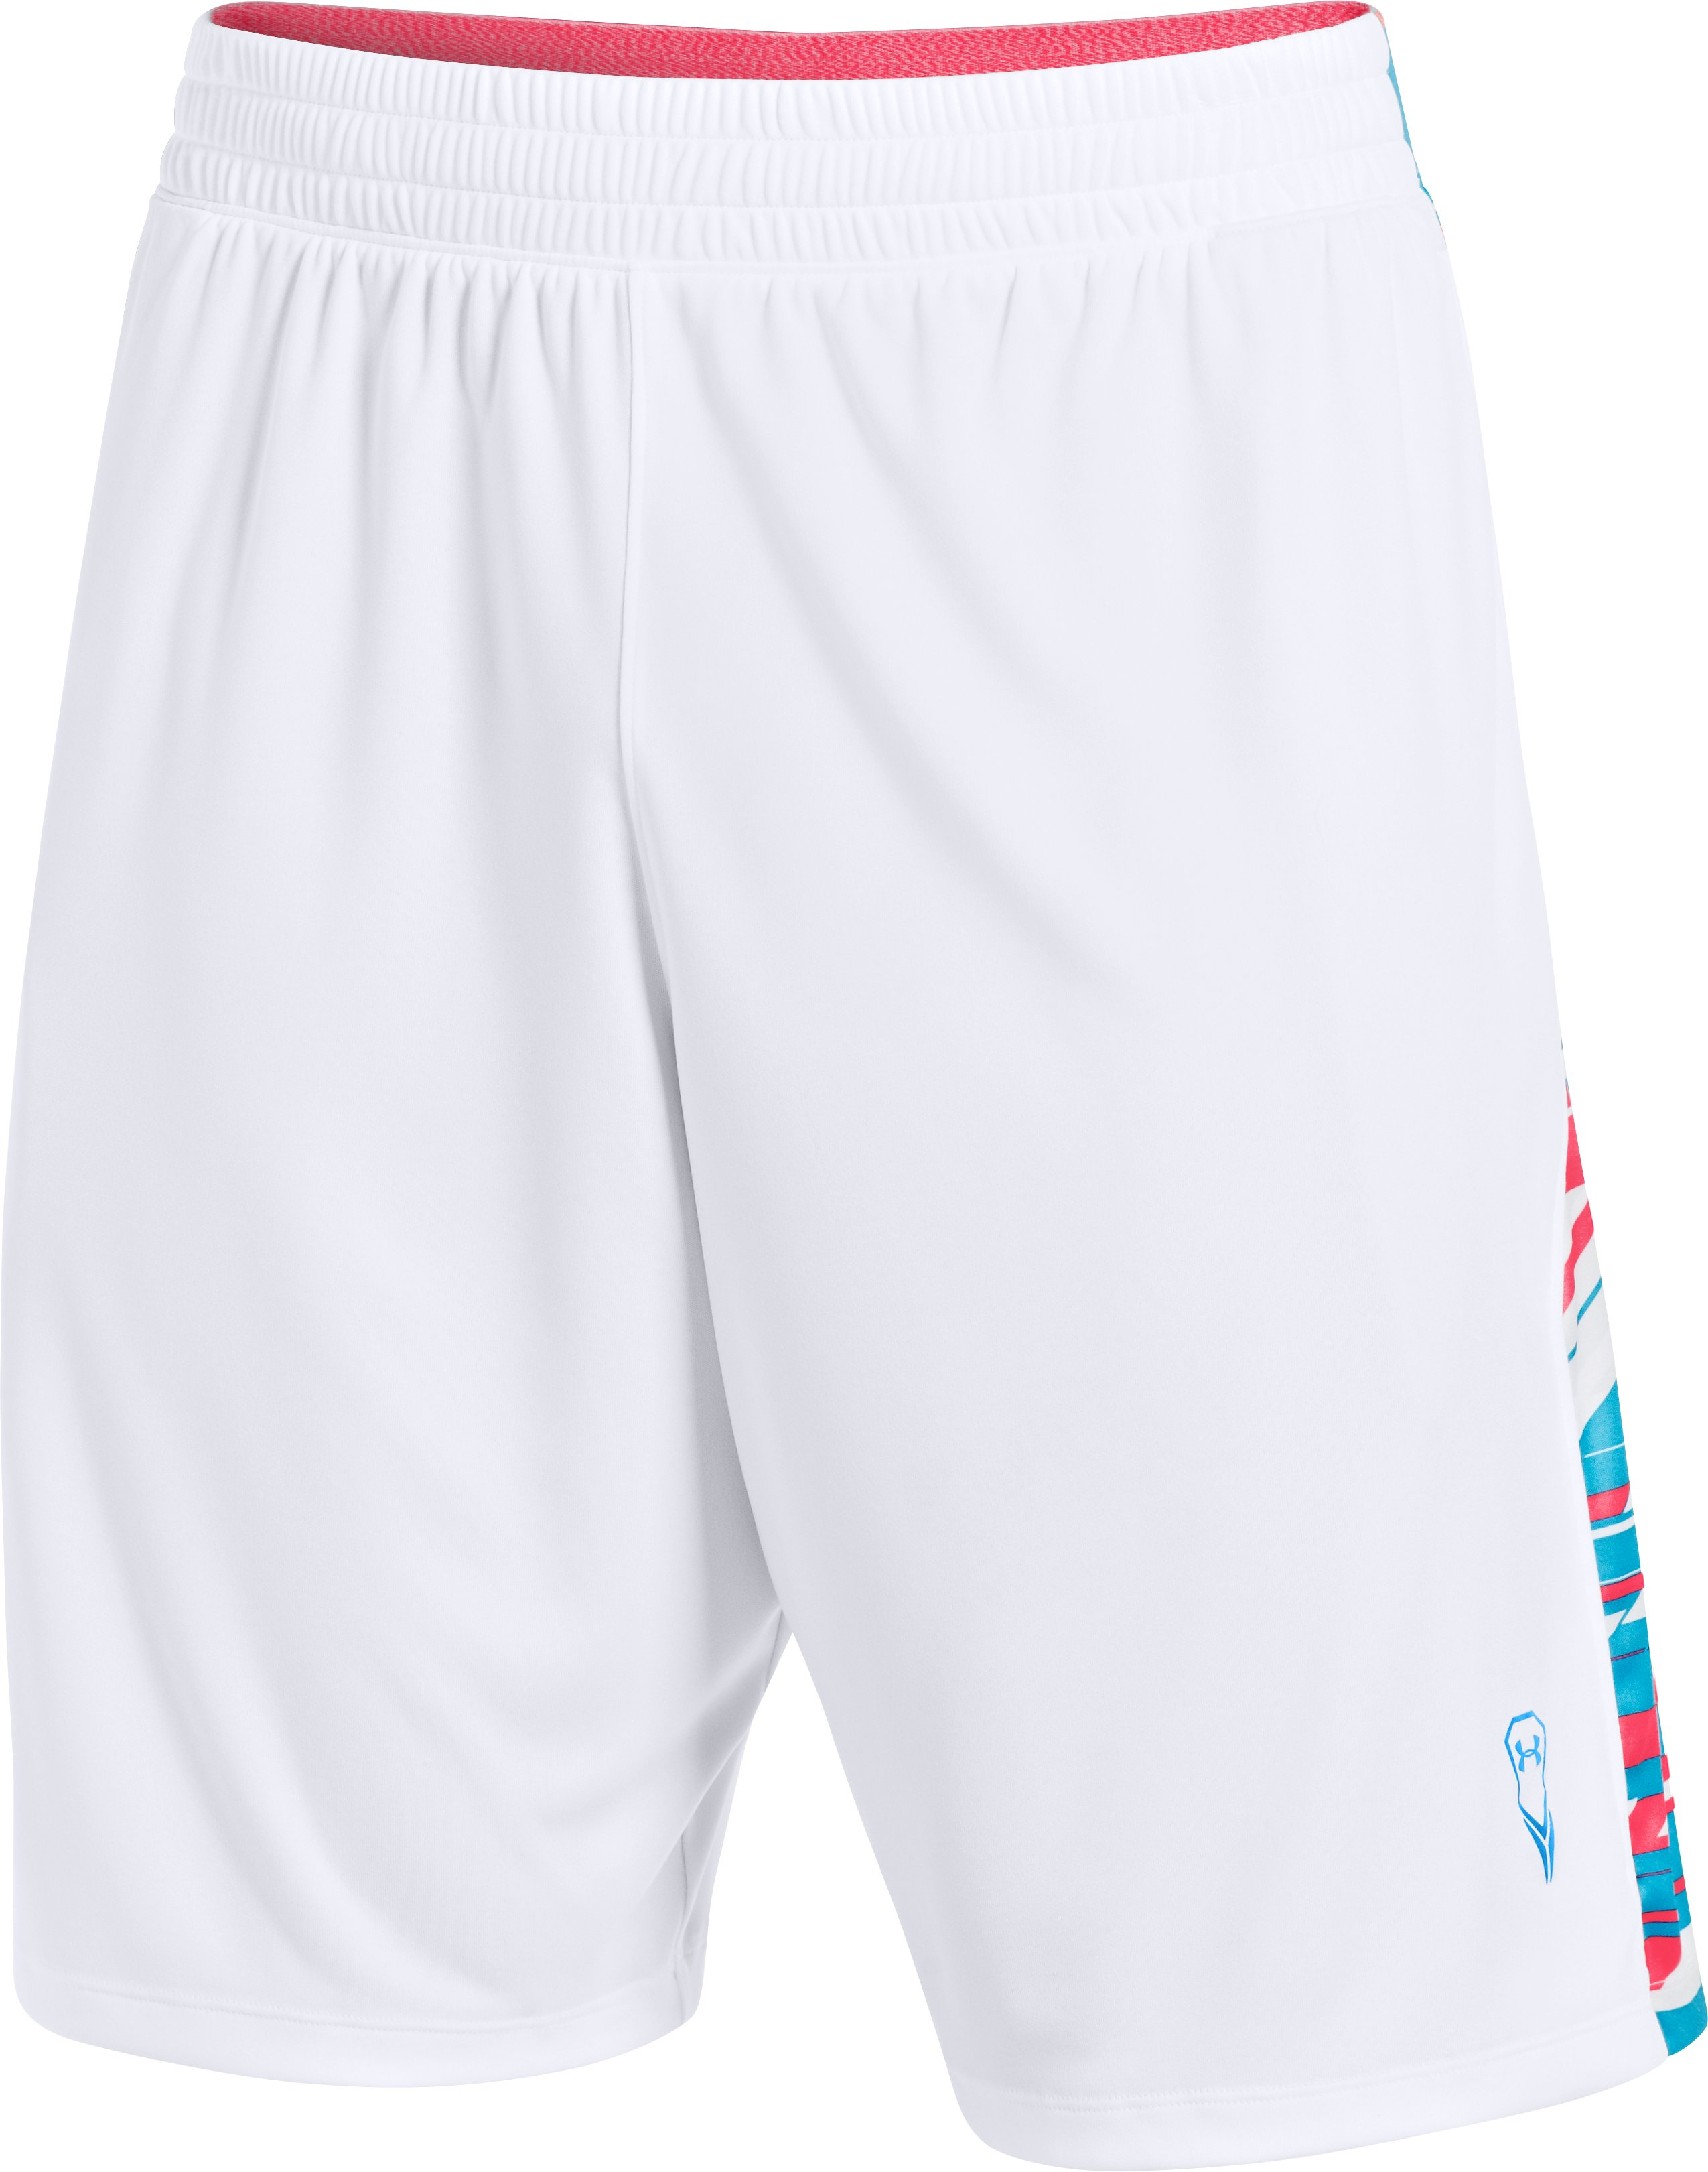 Men's UA Uri Dicuhluss Lacrosse Shorts, White